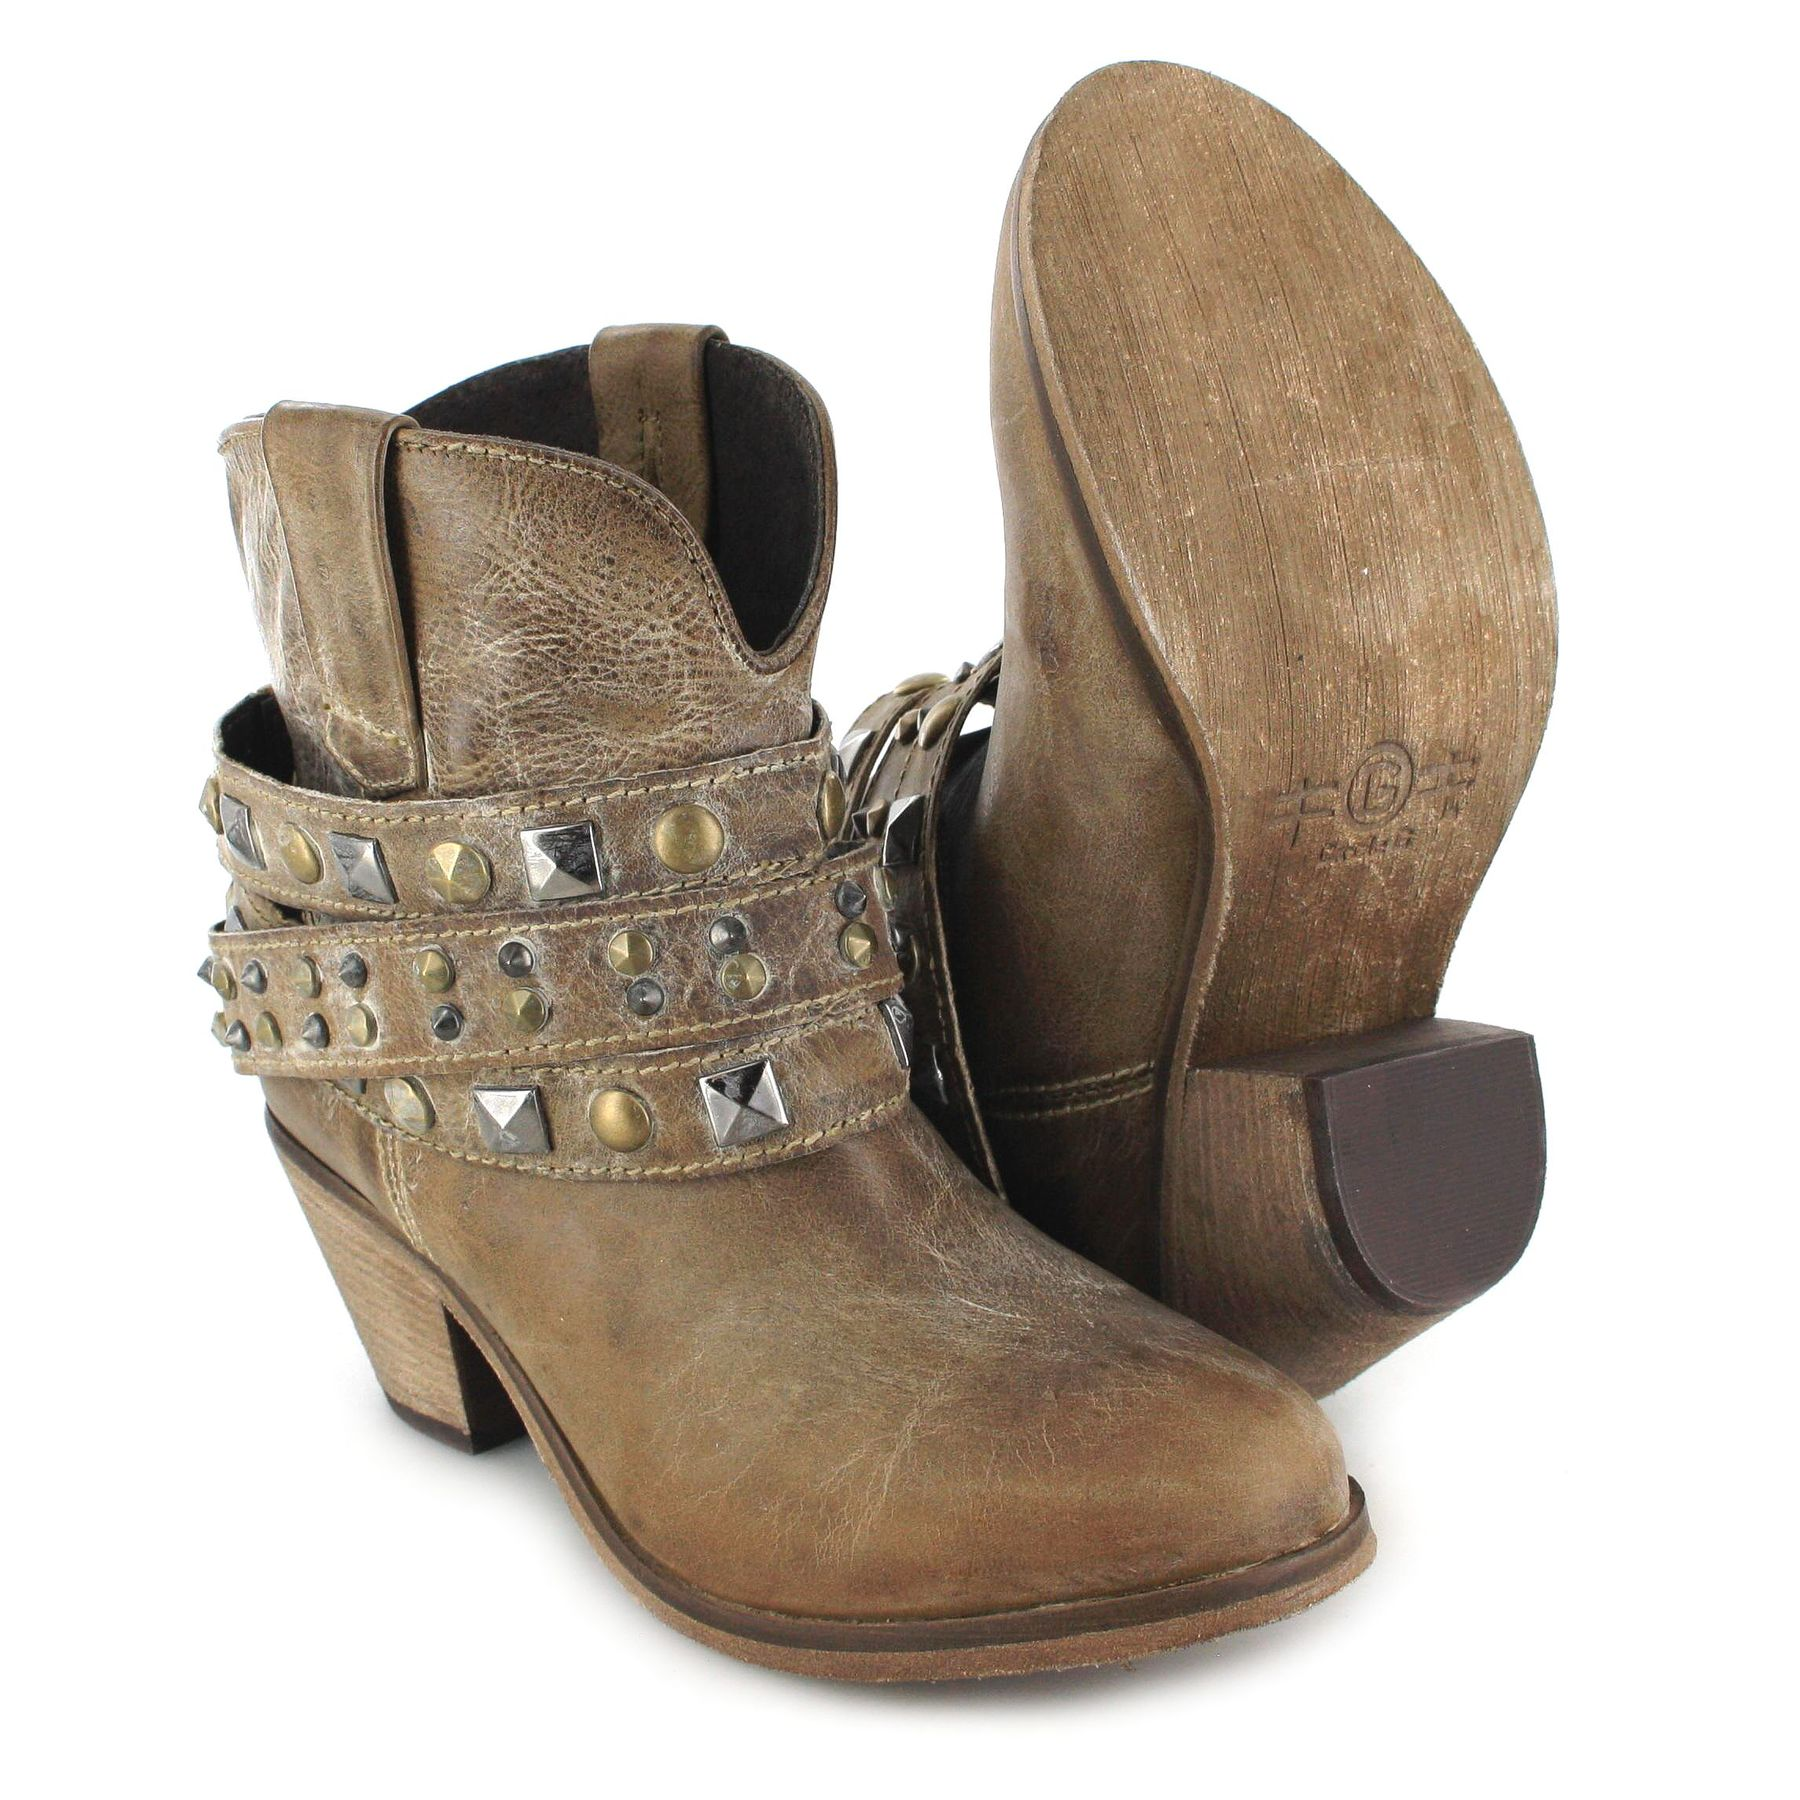 circle g by corral boots p5020 brown fashion ankle boot